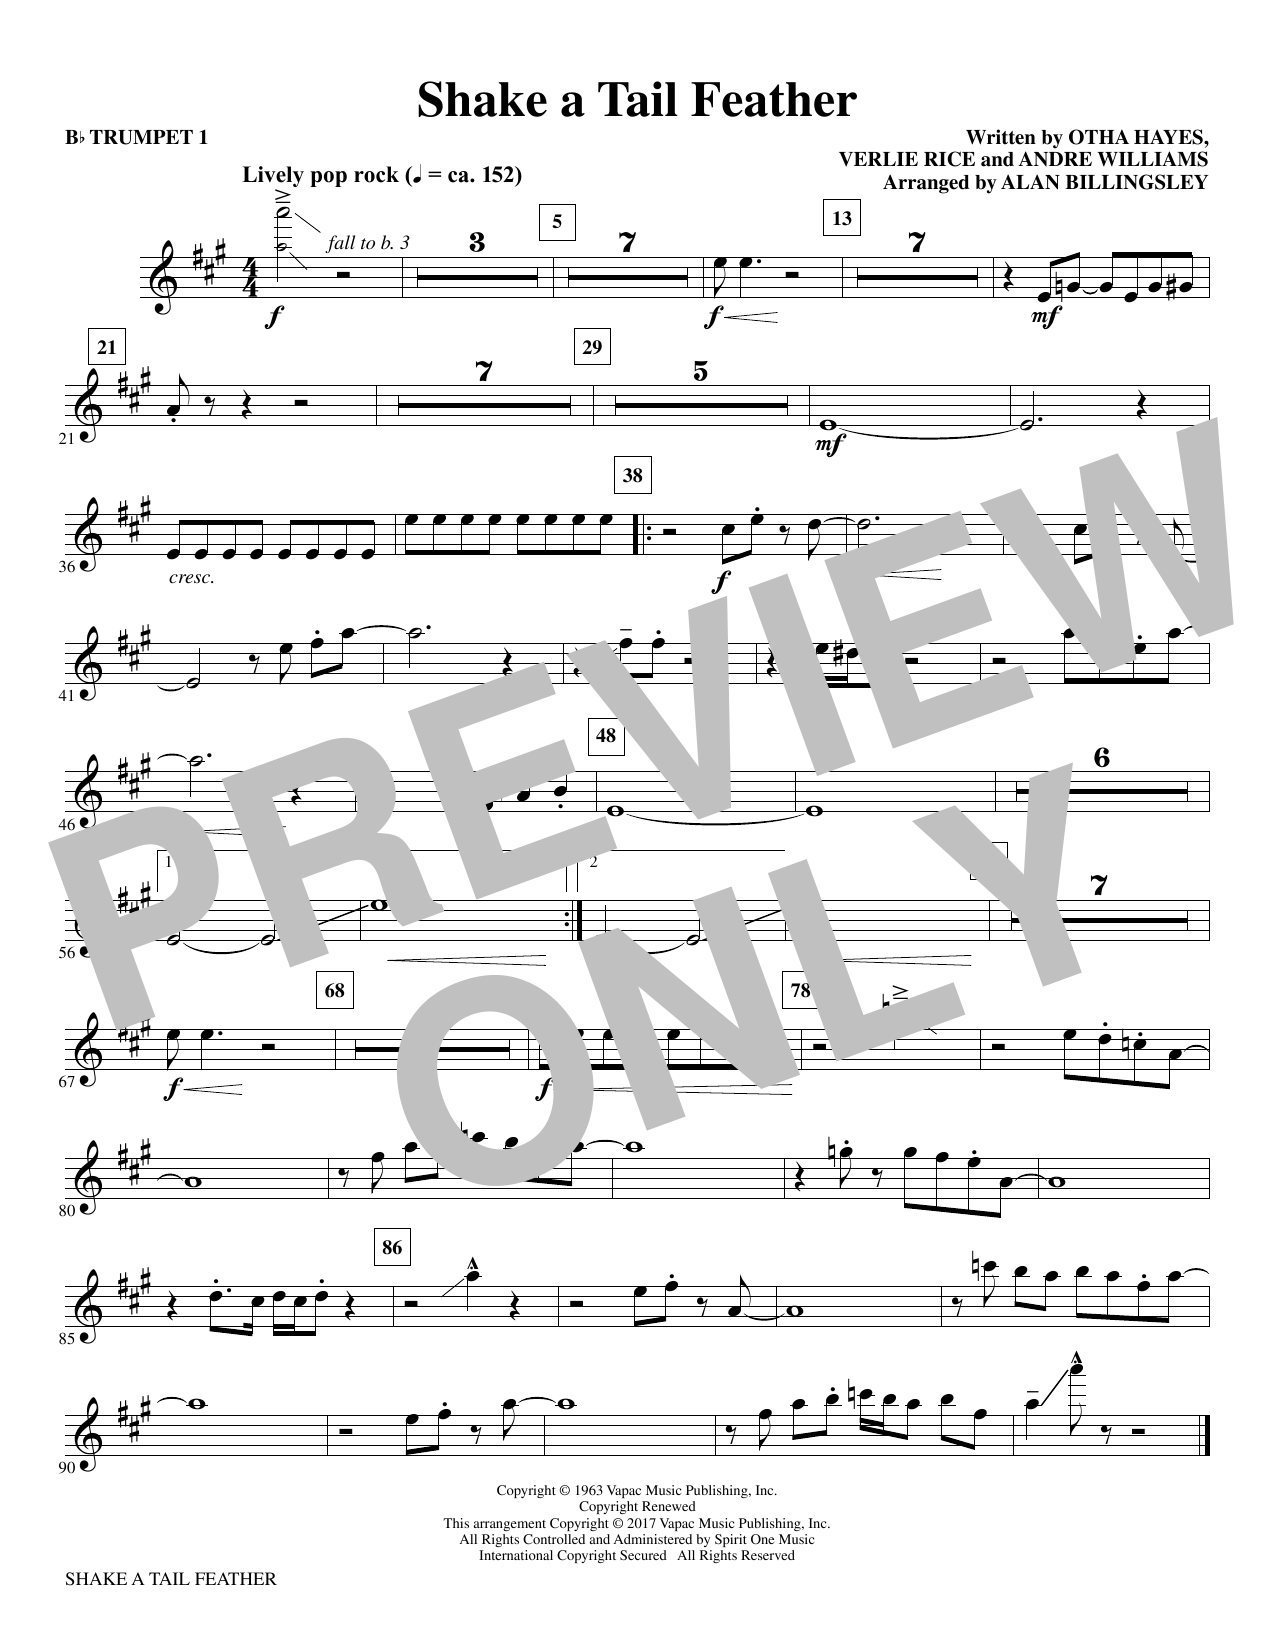 Download Alan Billingsley 'Shake a Tail Feather - Bb Trumpet 1' Digital Sheet Music Notes & Chords and start playing in minutes